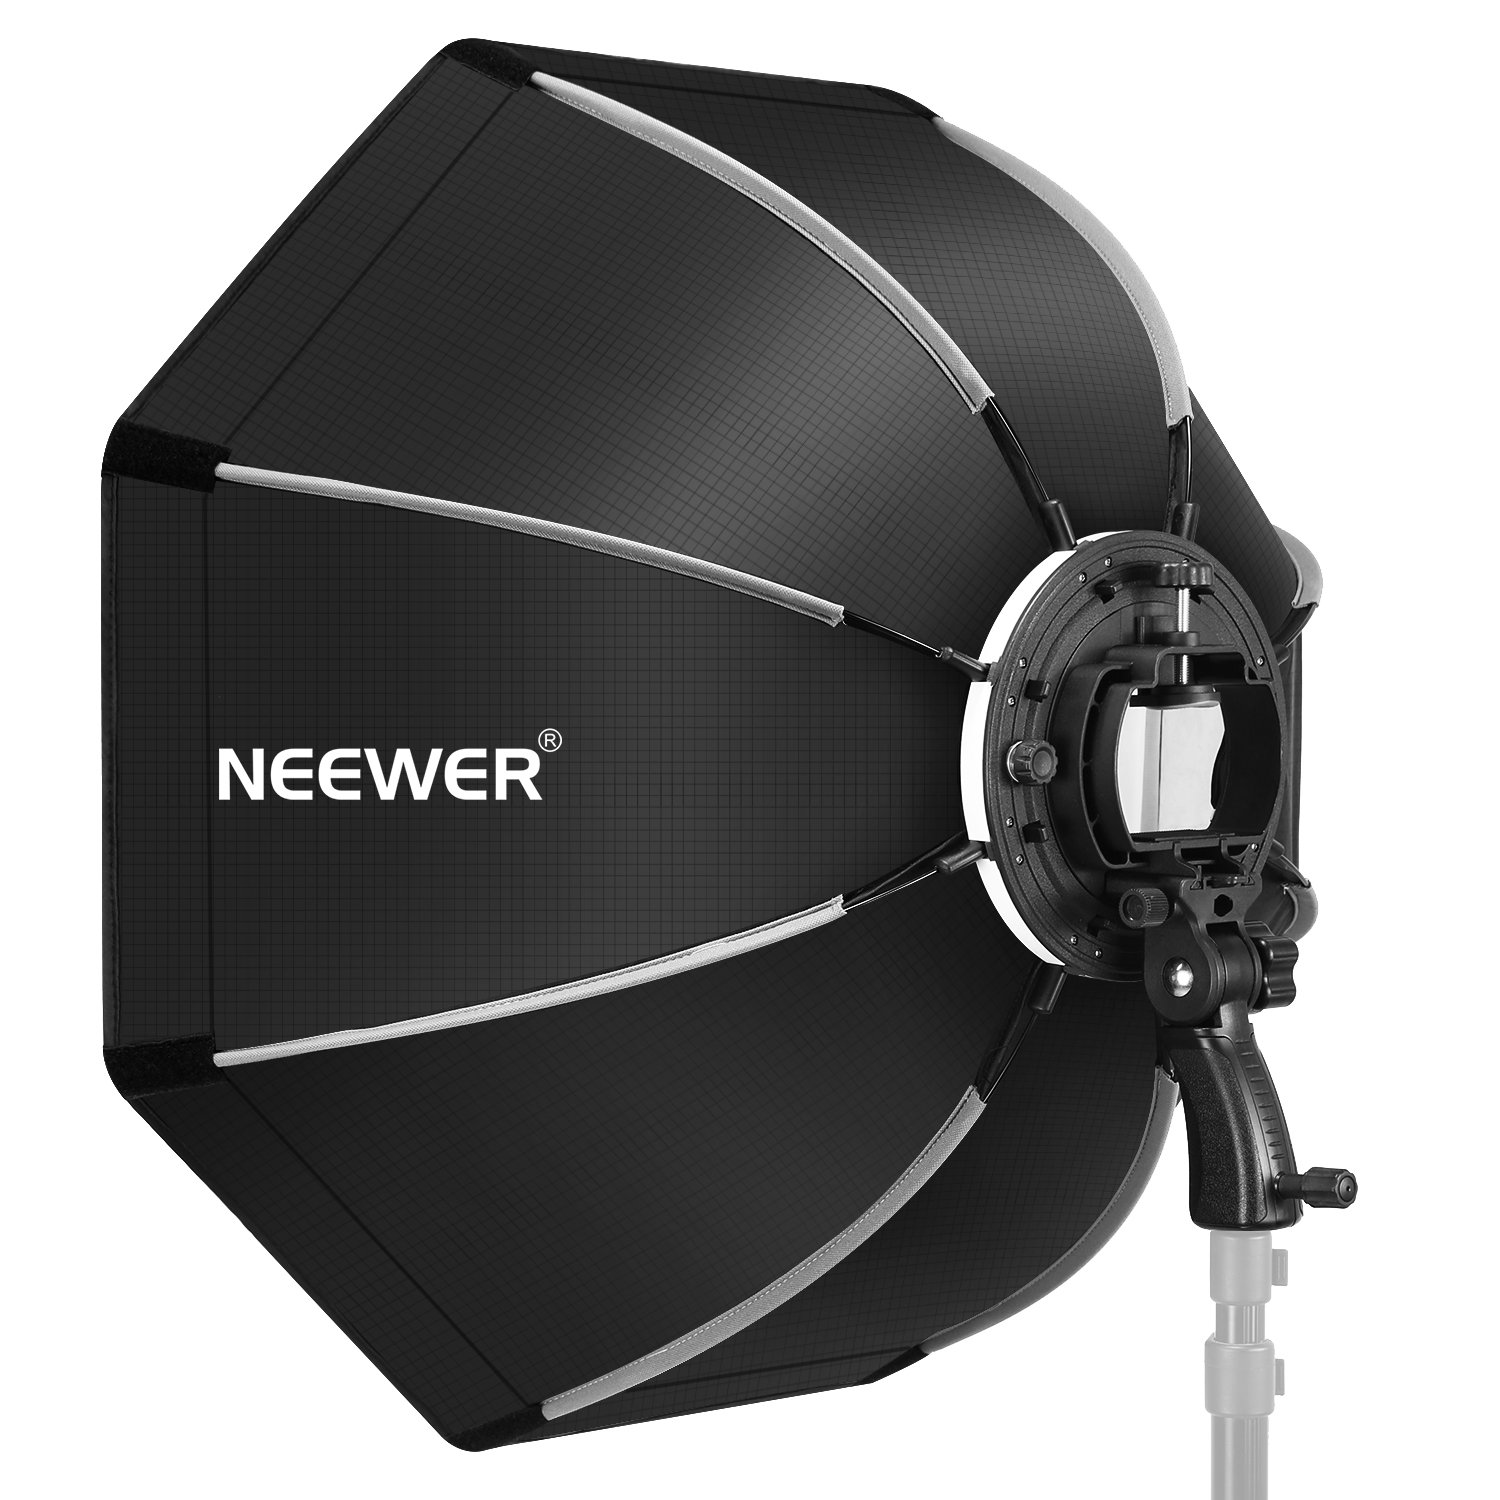 Neewer 26 inches/65 centimeters Octagonal Softbox with S-type Bracket Mount,Carrying Case for Canon Nikon TT560 NW561 NW562 NW565 NW620 NW630 NW680 NW670 750II NW910 NW880 Flash Speedlites by Neewer